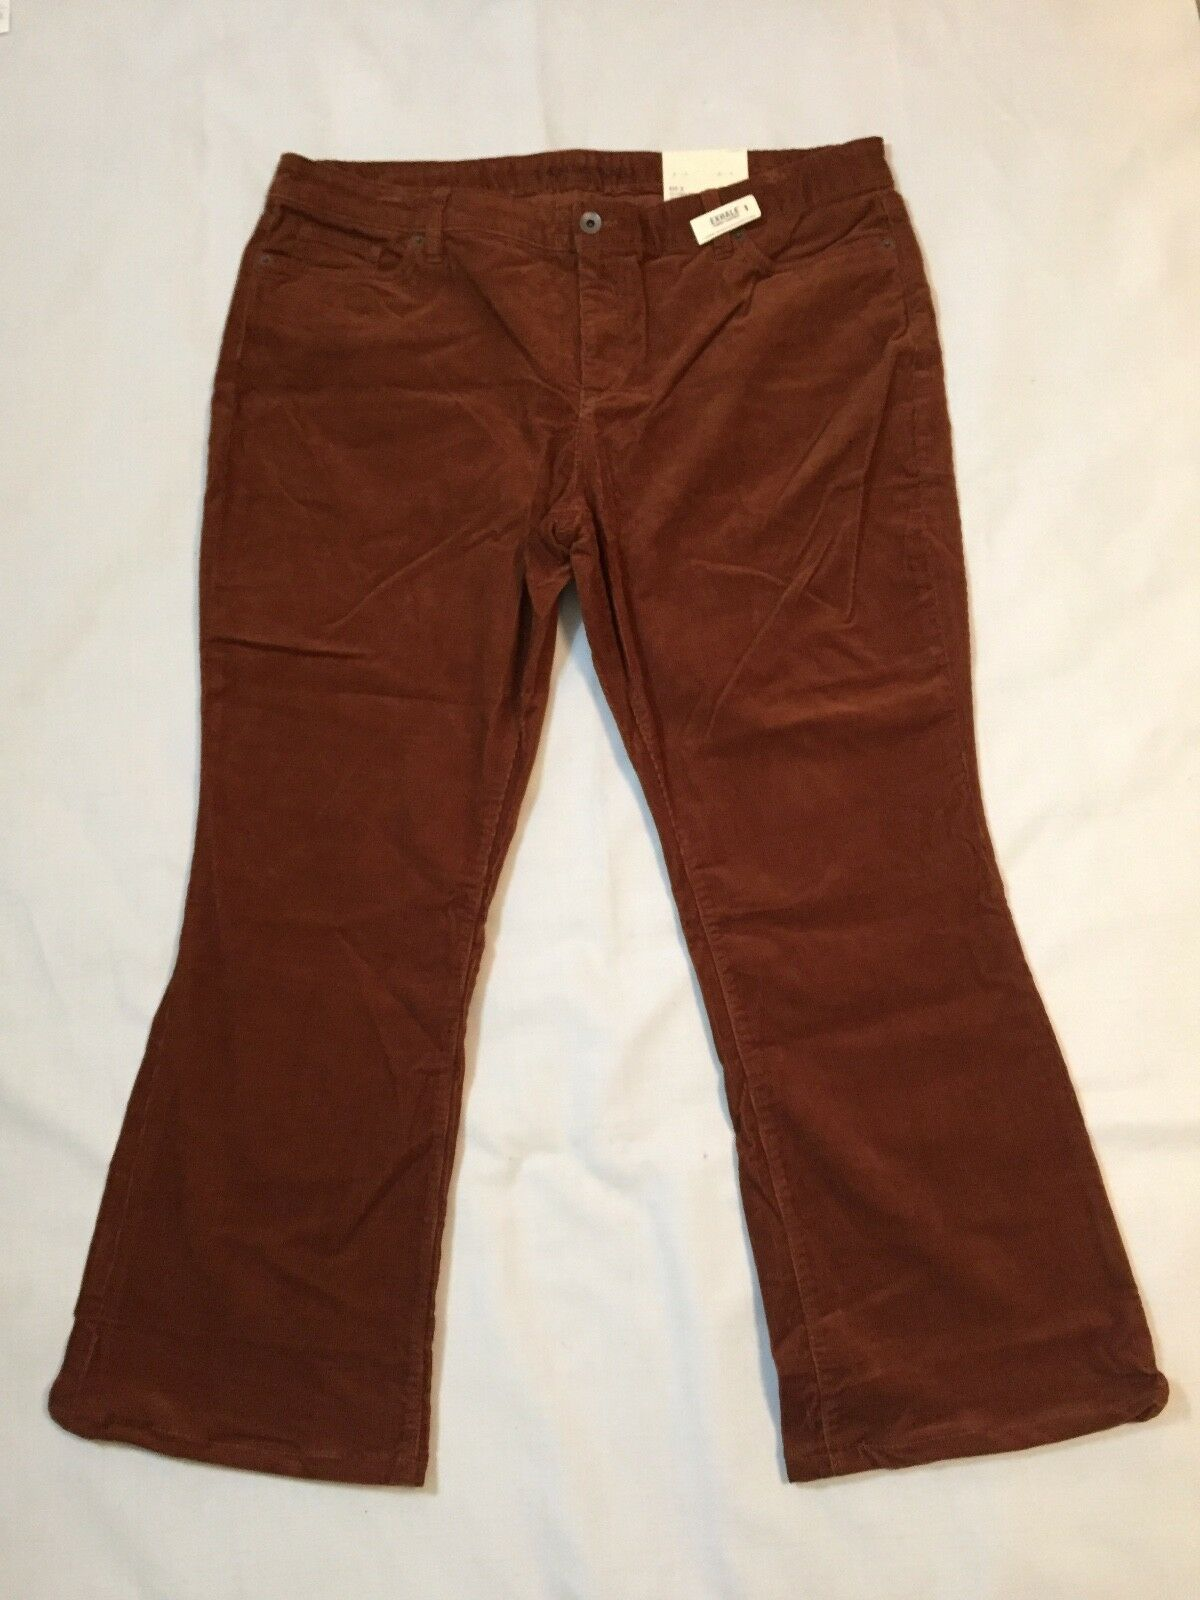 Lands' End Women's Mid Rise BootLeg Corduroy Pants Size 18P New with Tags